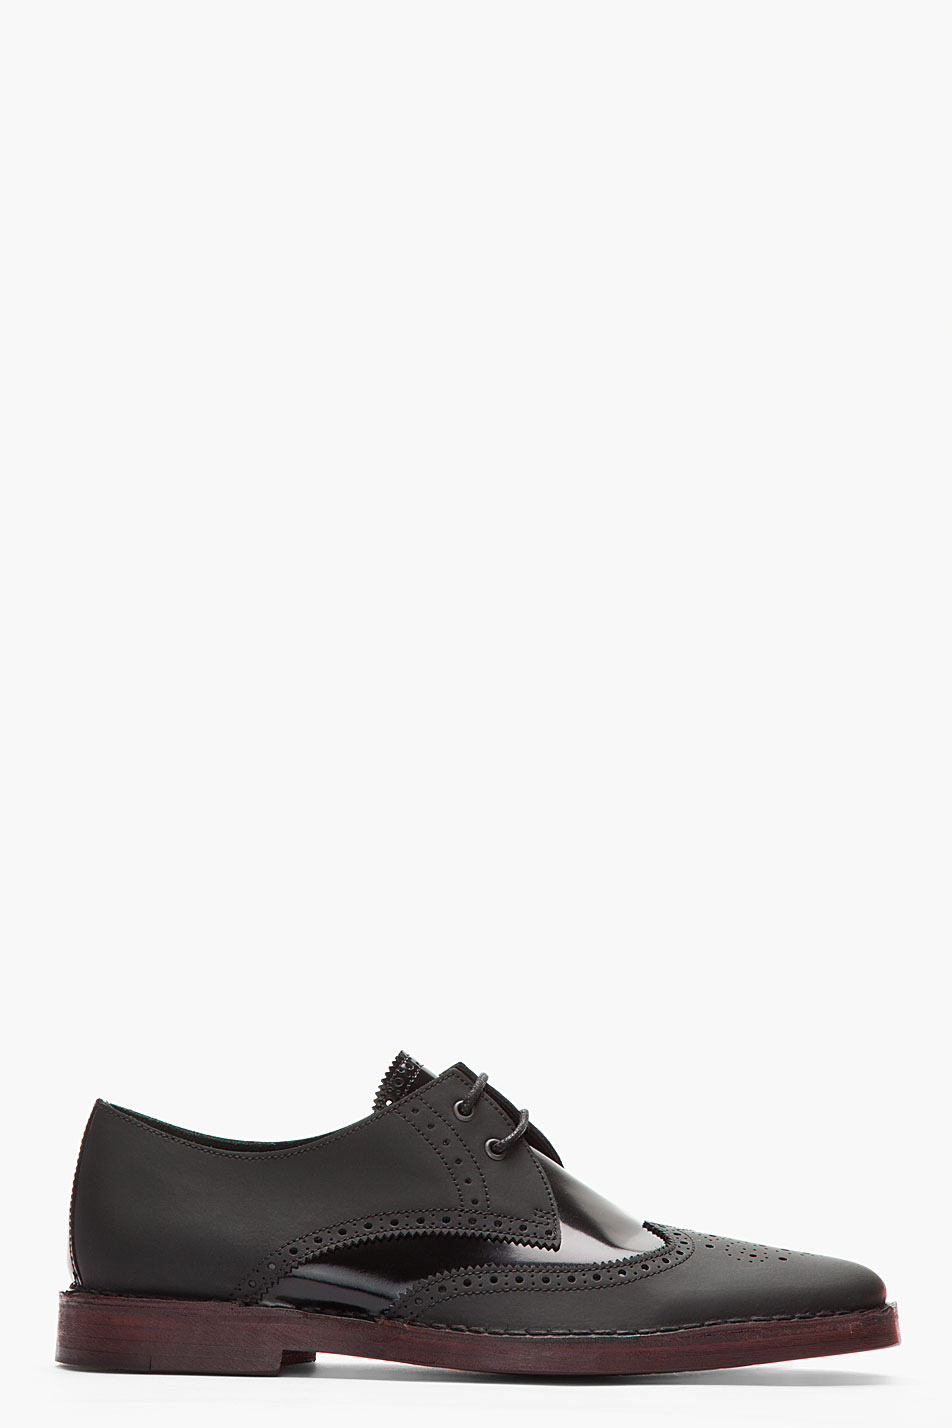 103b2d1a112b5 Fusion Of Effects  Trendology  Pierre Hardy Black Matte   Patent Leather  By10 Derbys